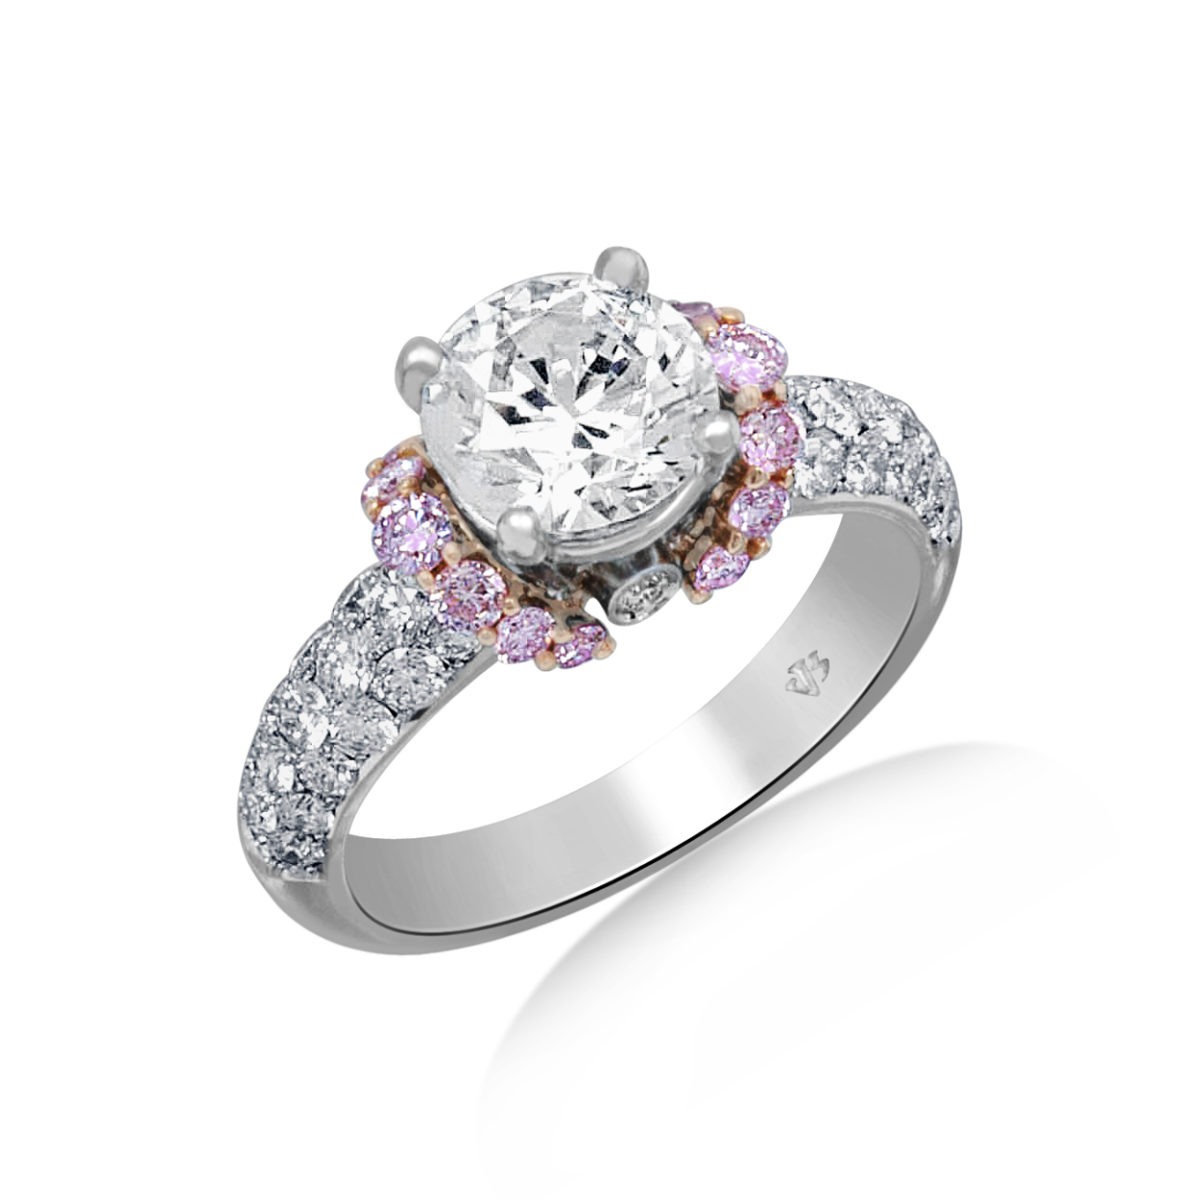 Jack kelege diamond engagement ring with pink diamond for Dimond wedding ring